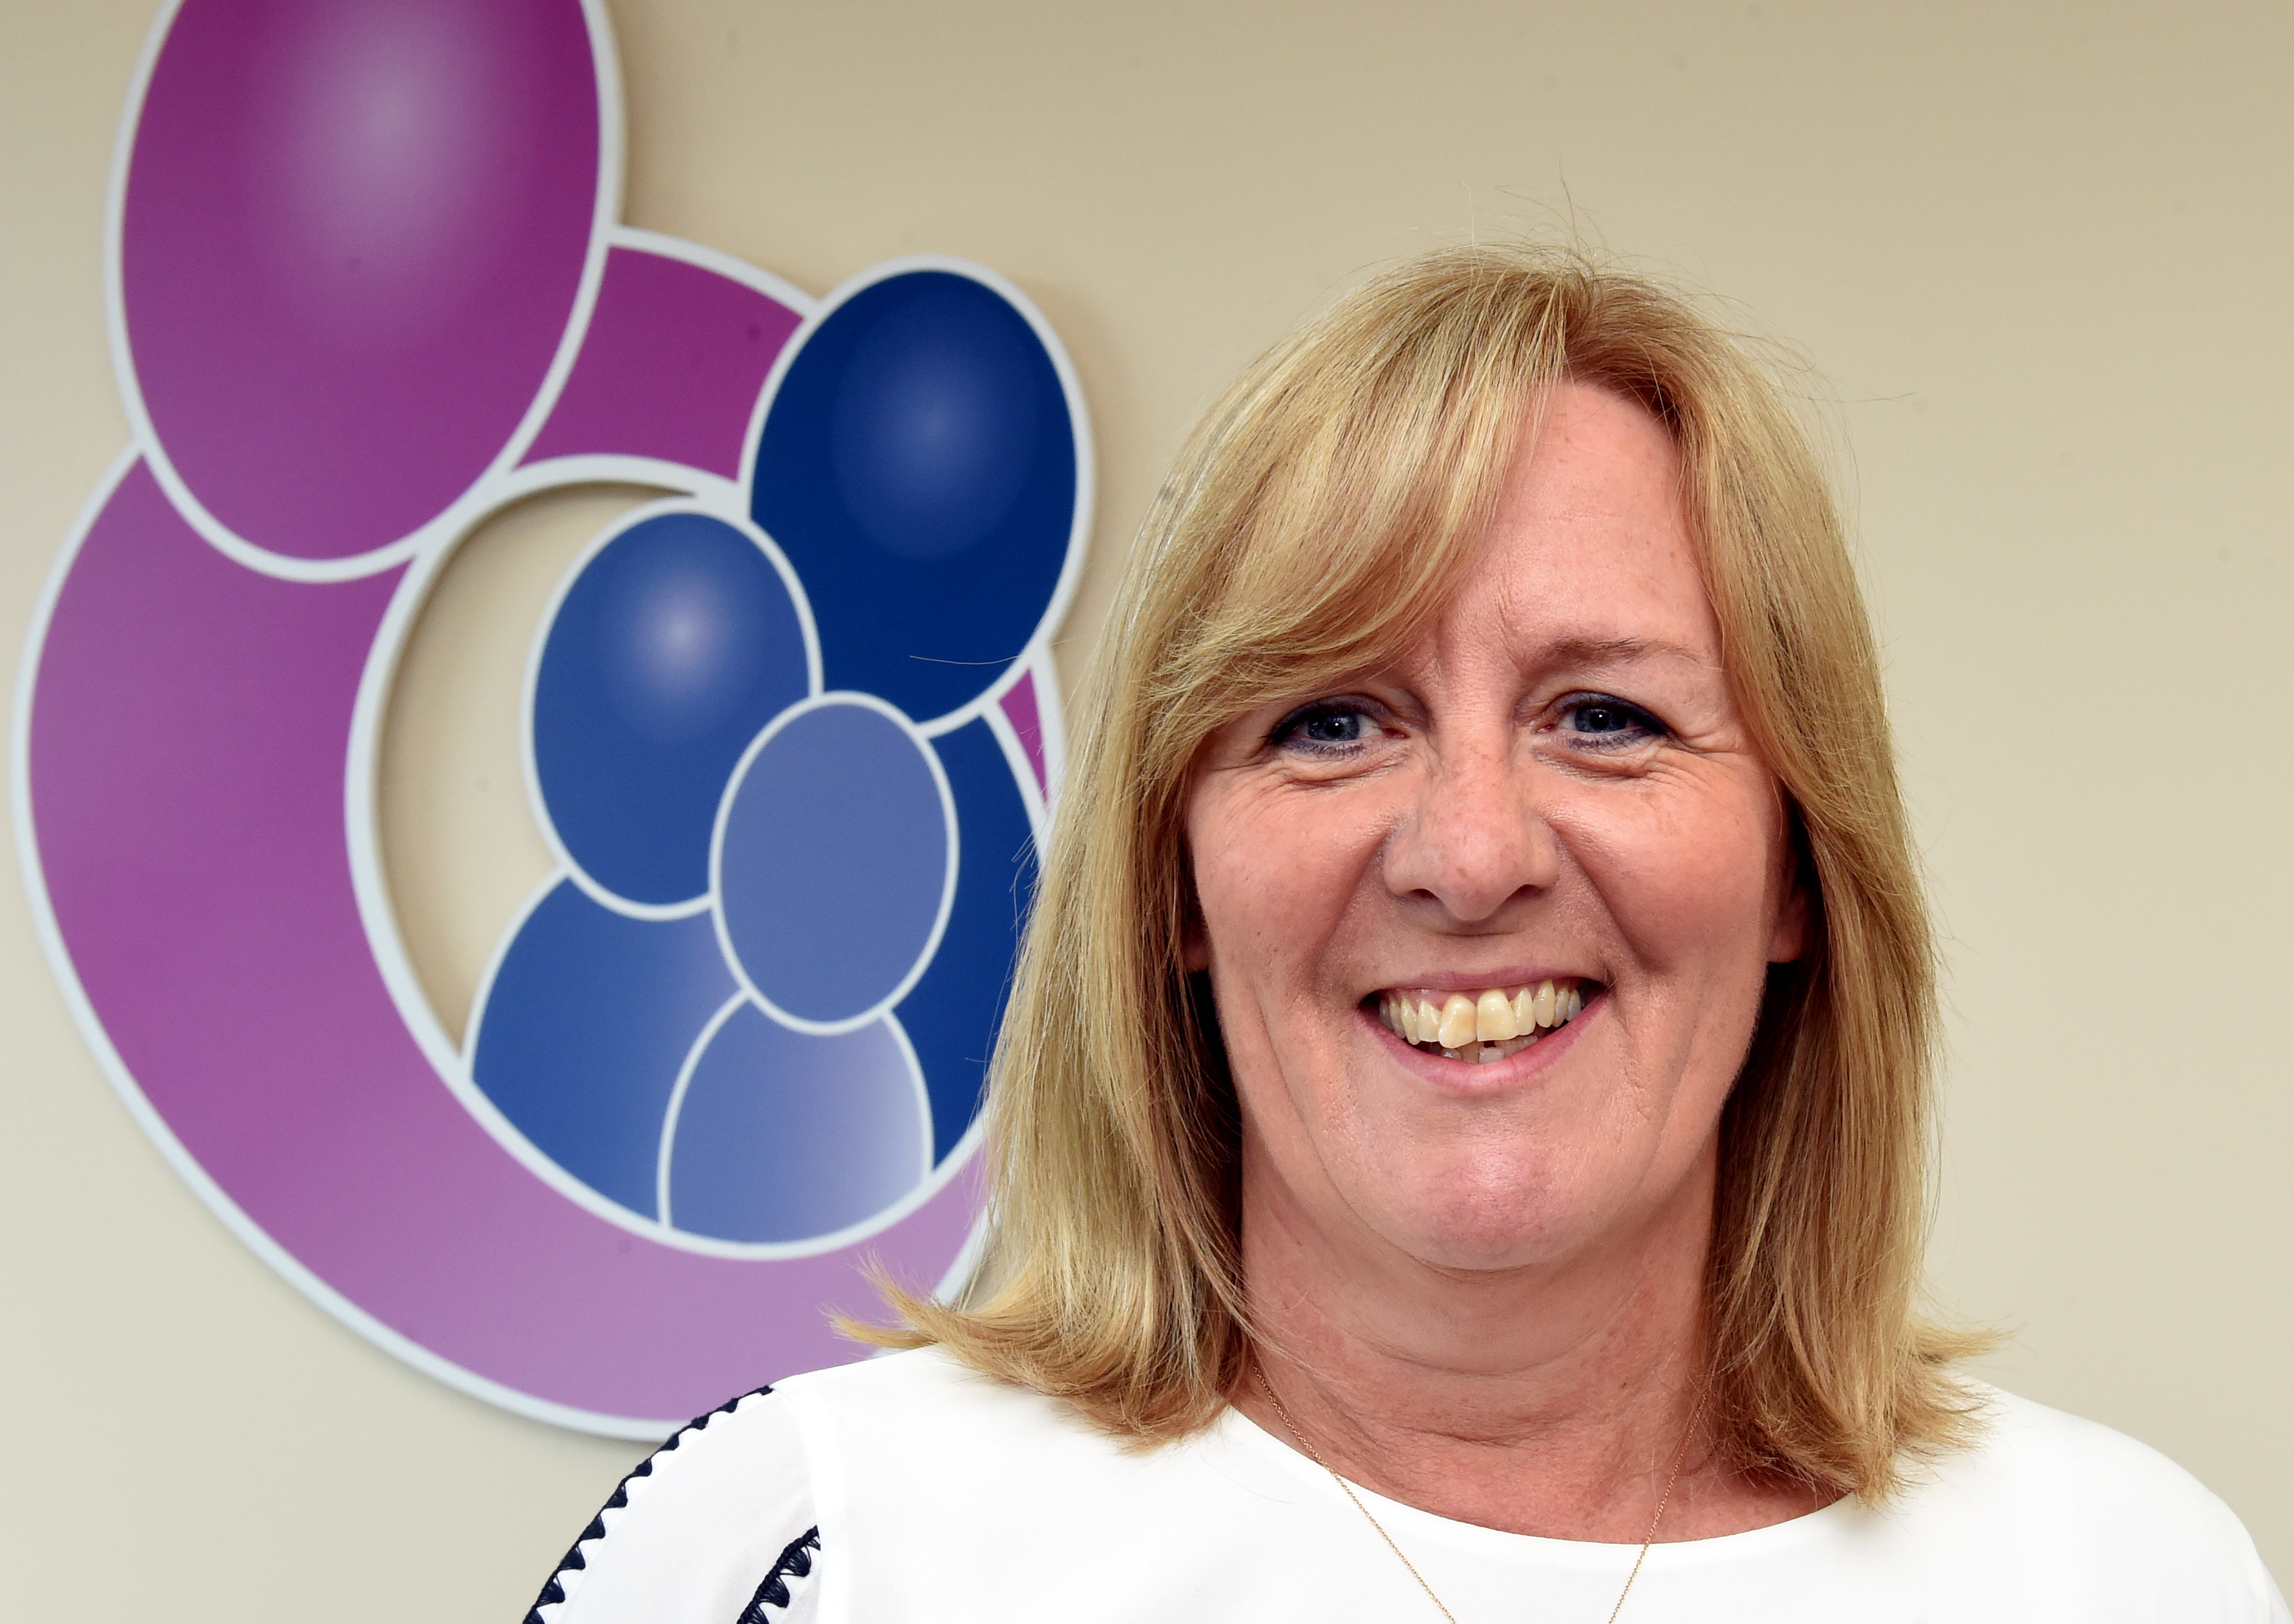 CLAN chief executive Dr Colette Backwell says patients are facing additional strain.